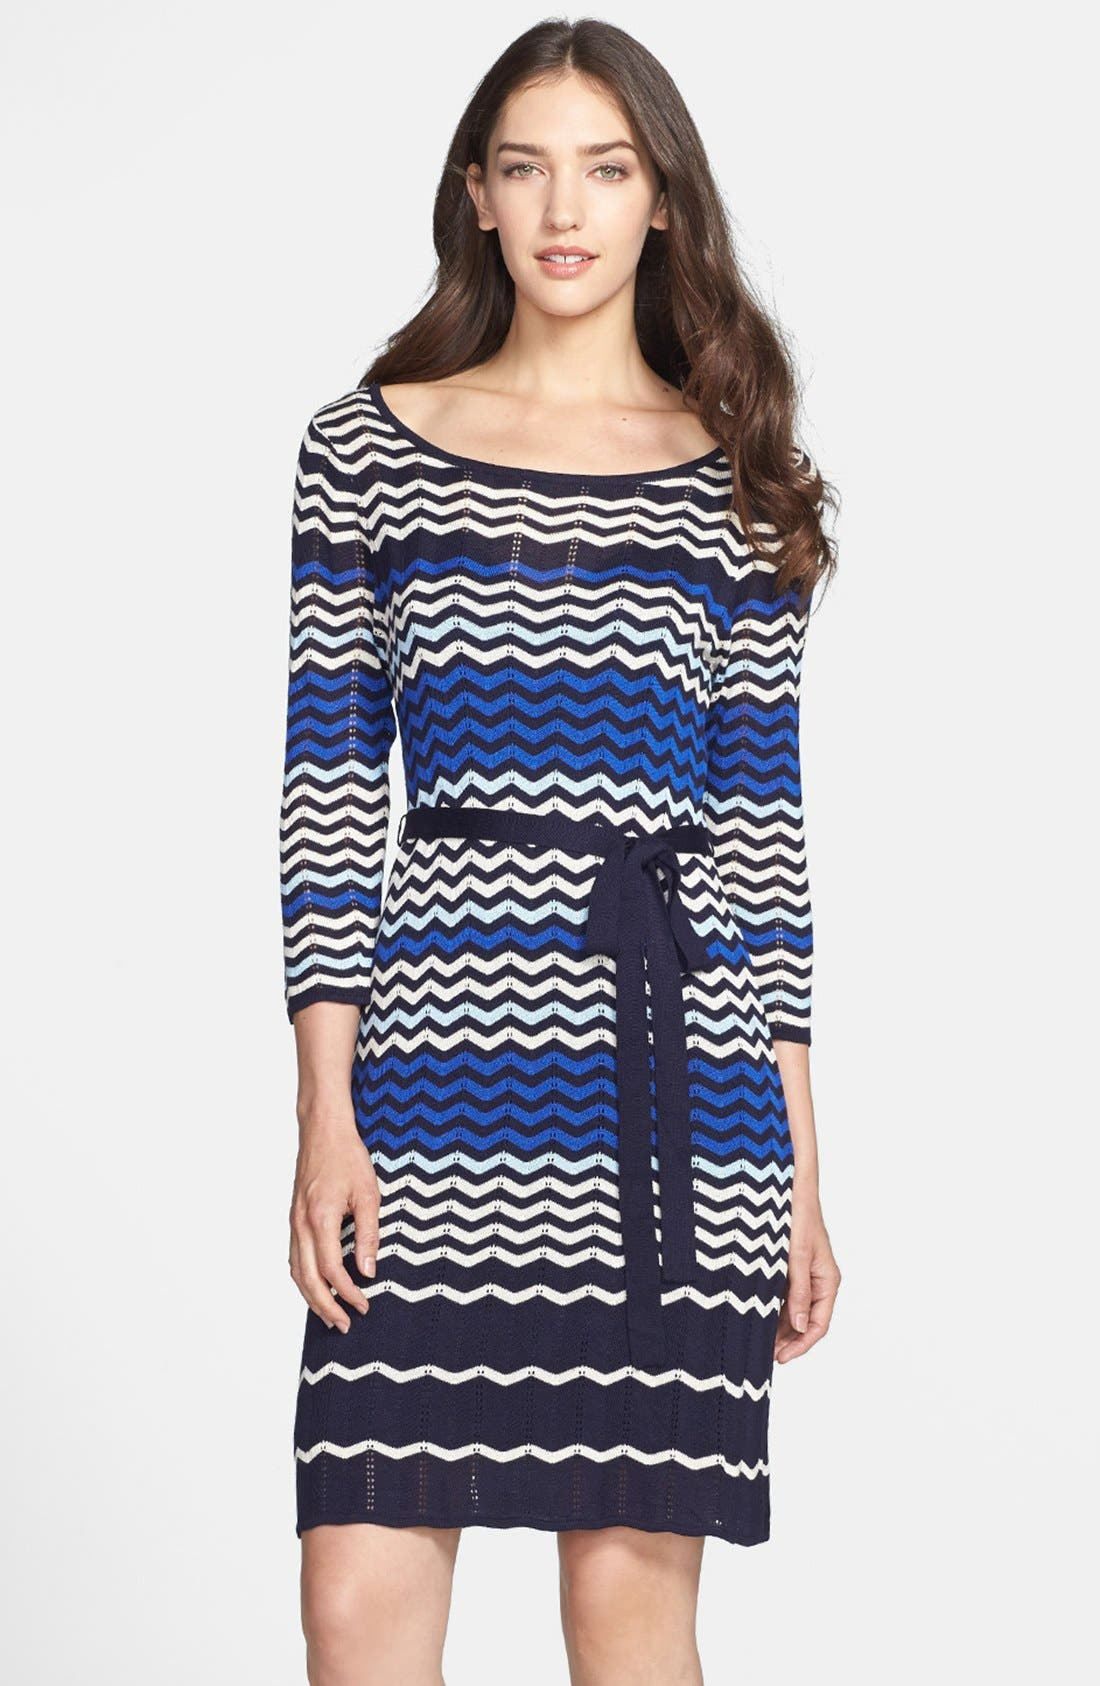 Main Image - Taylor Dresses Zigzag Knit Sweater Dress